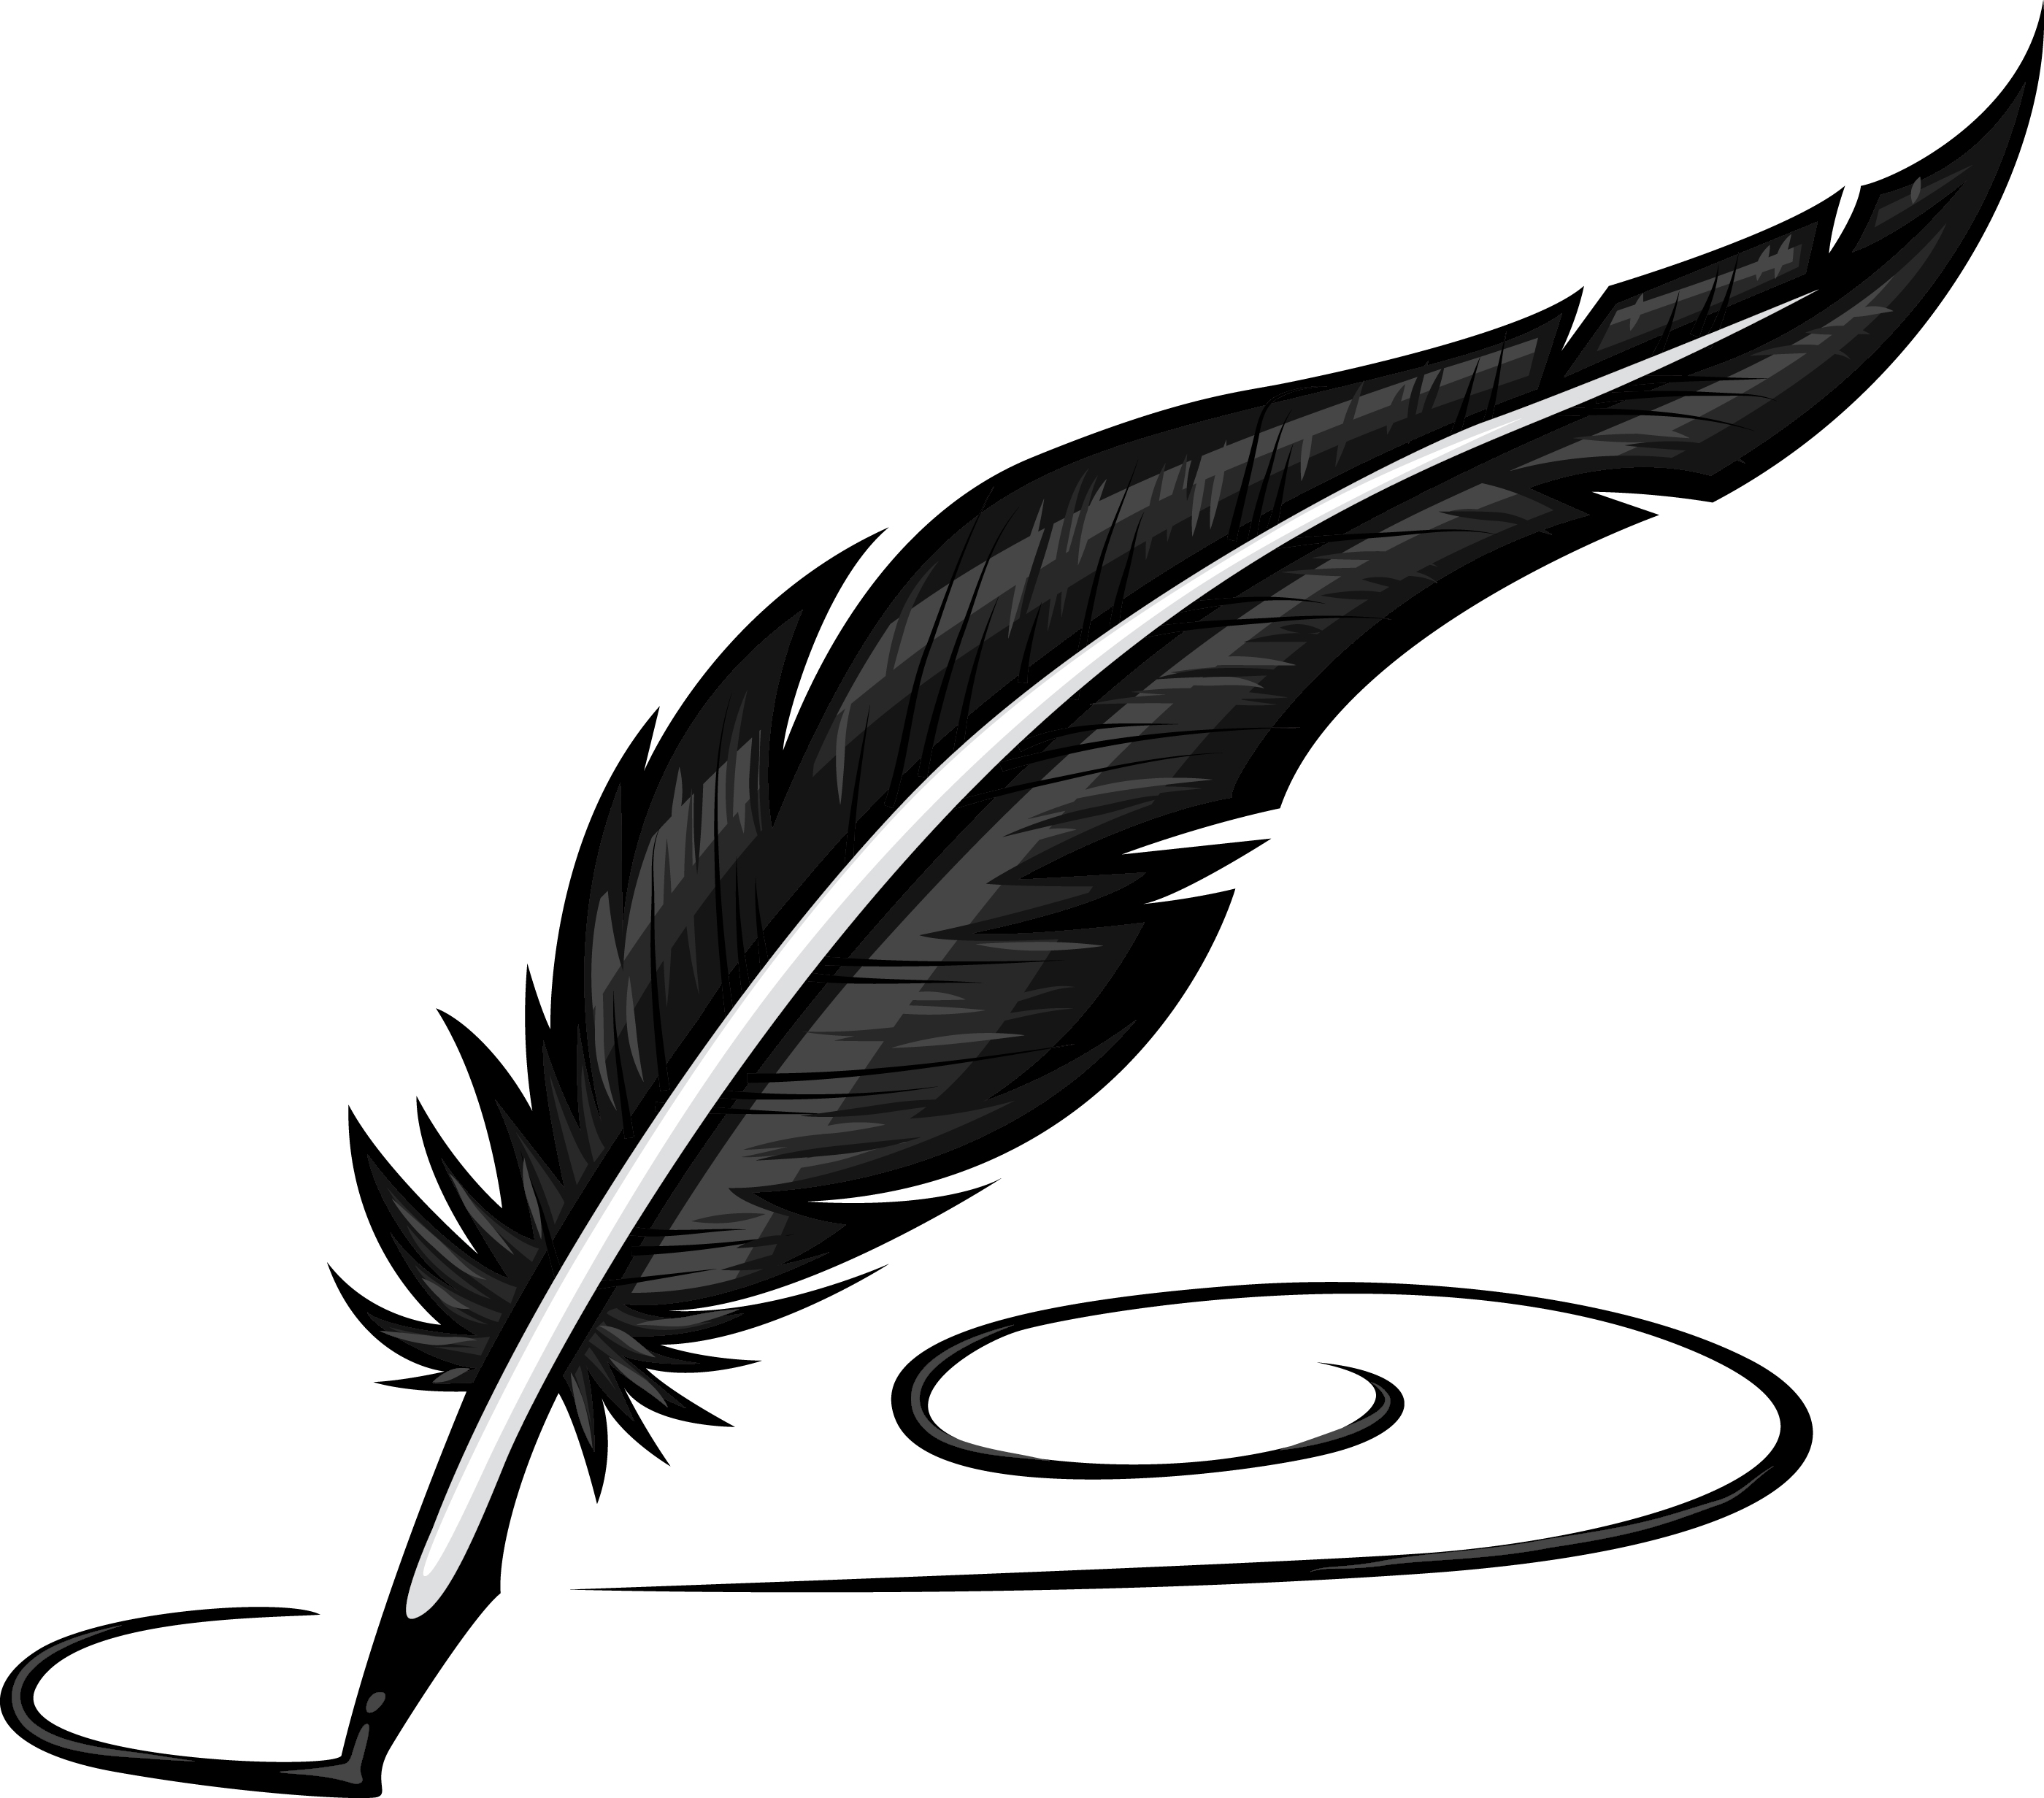 Ink Bottle And Feather Png Transparent Ink Bottle And Feather Png